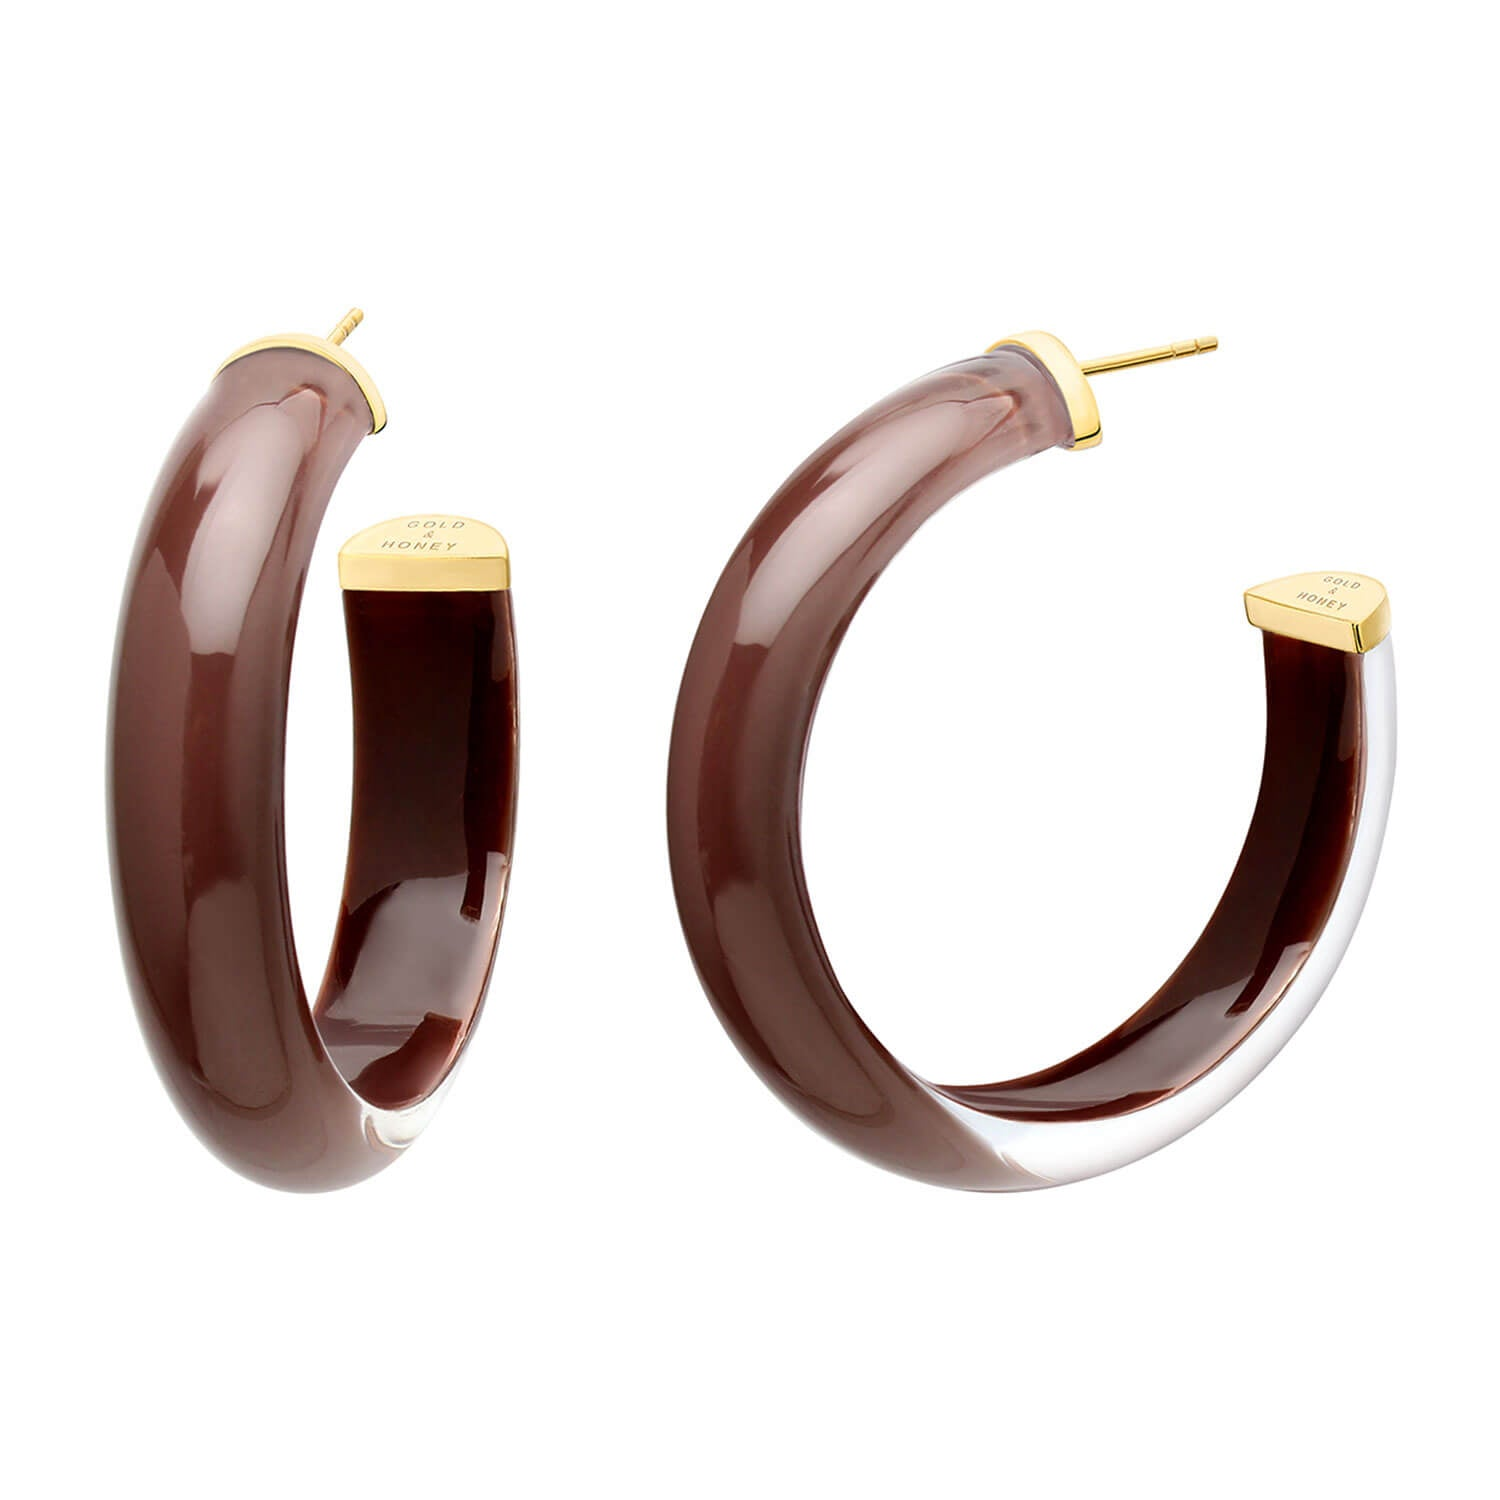 Nude 5 - Illusion Hoops